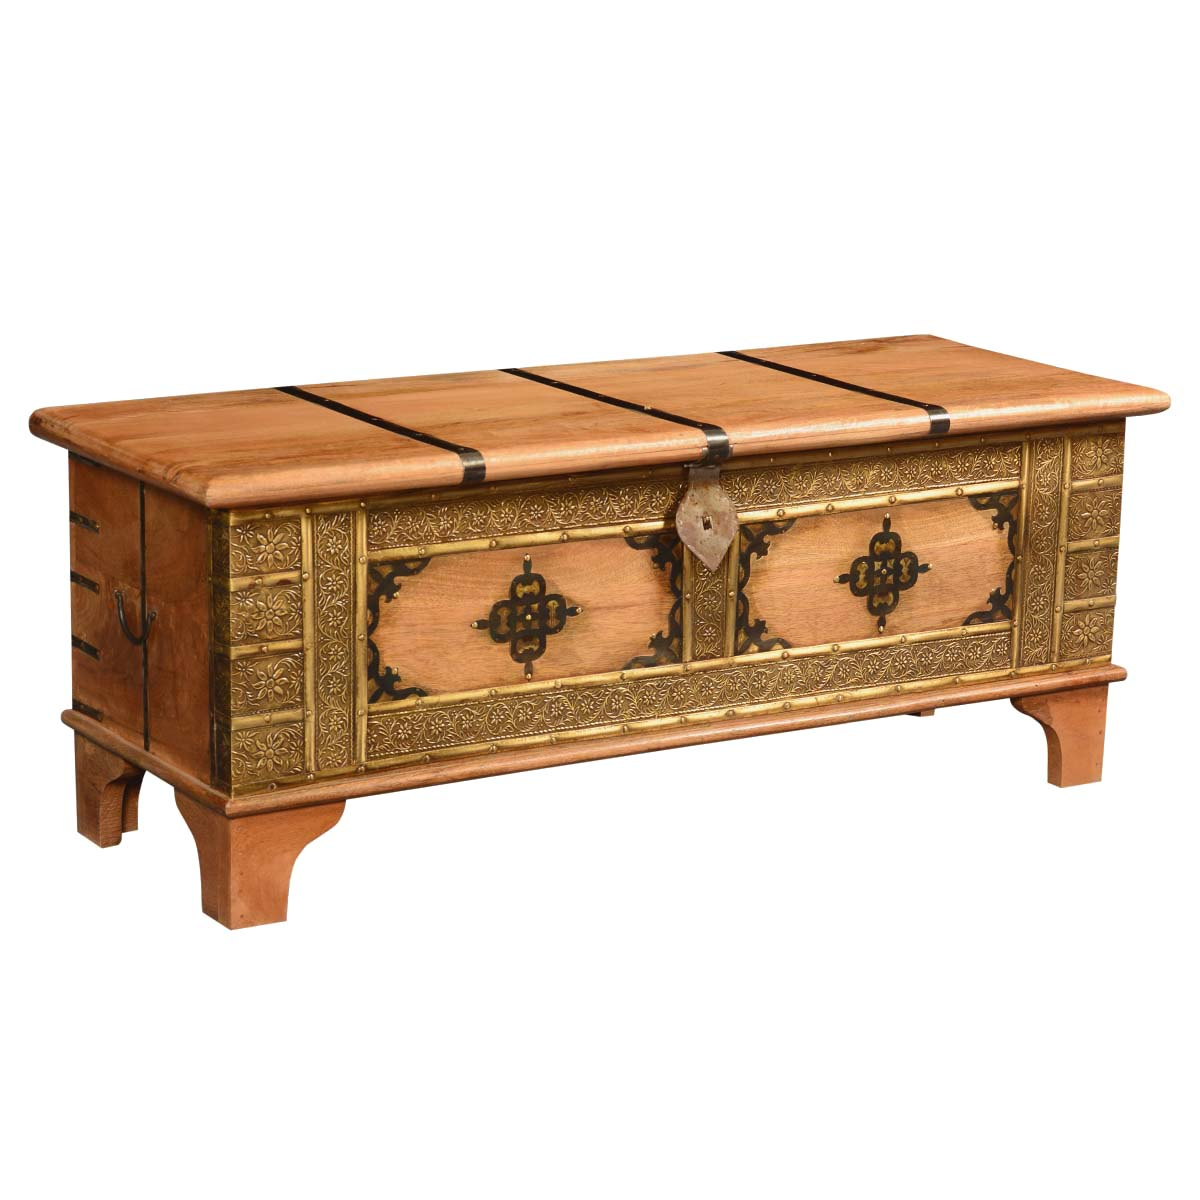 Trendy Asian Splendor Mango Wood Brass Inlay Coffee Table Inside Joni Brass And Wood Coffee Tables (View 17 of 20)